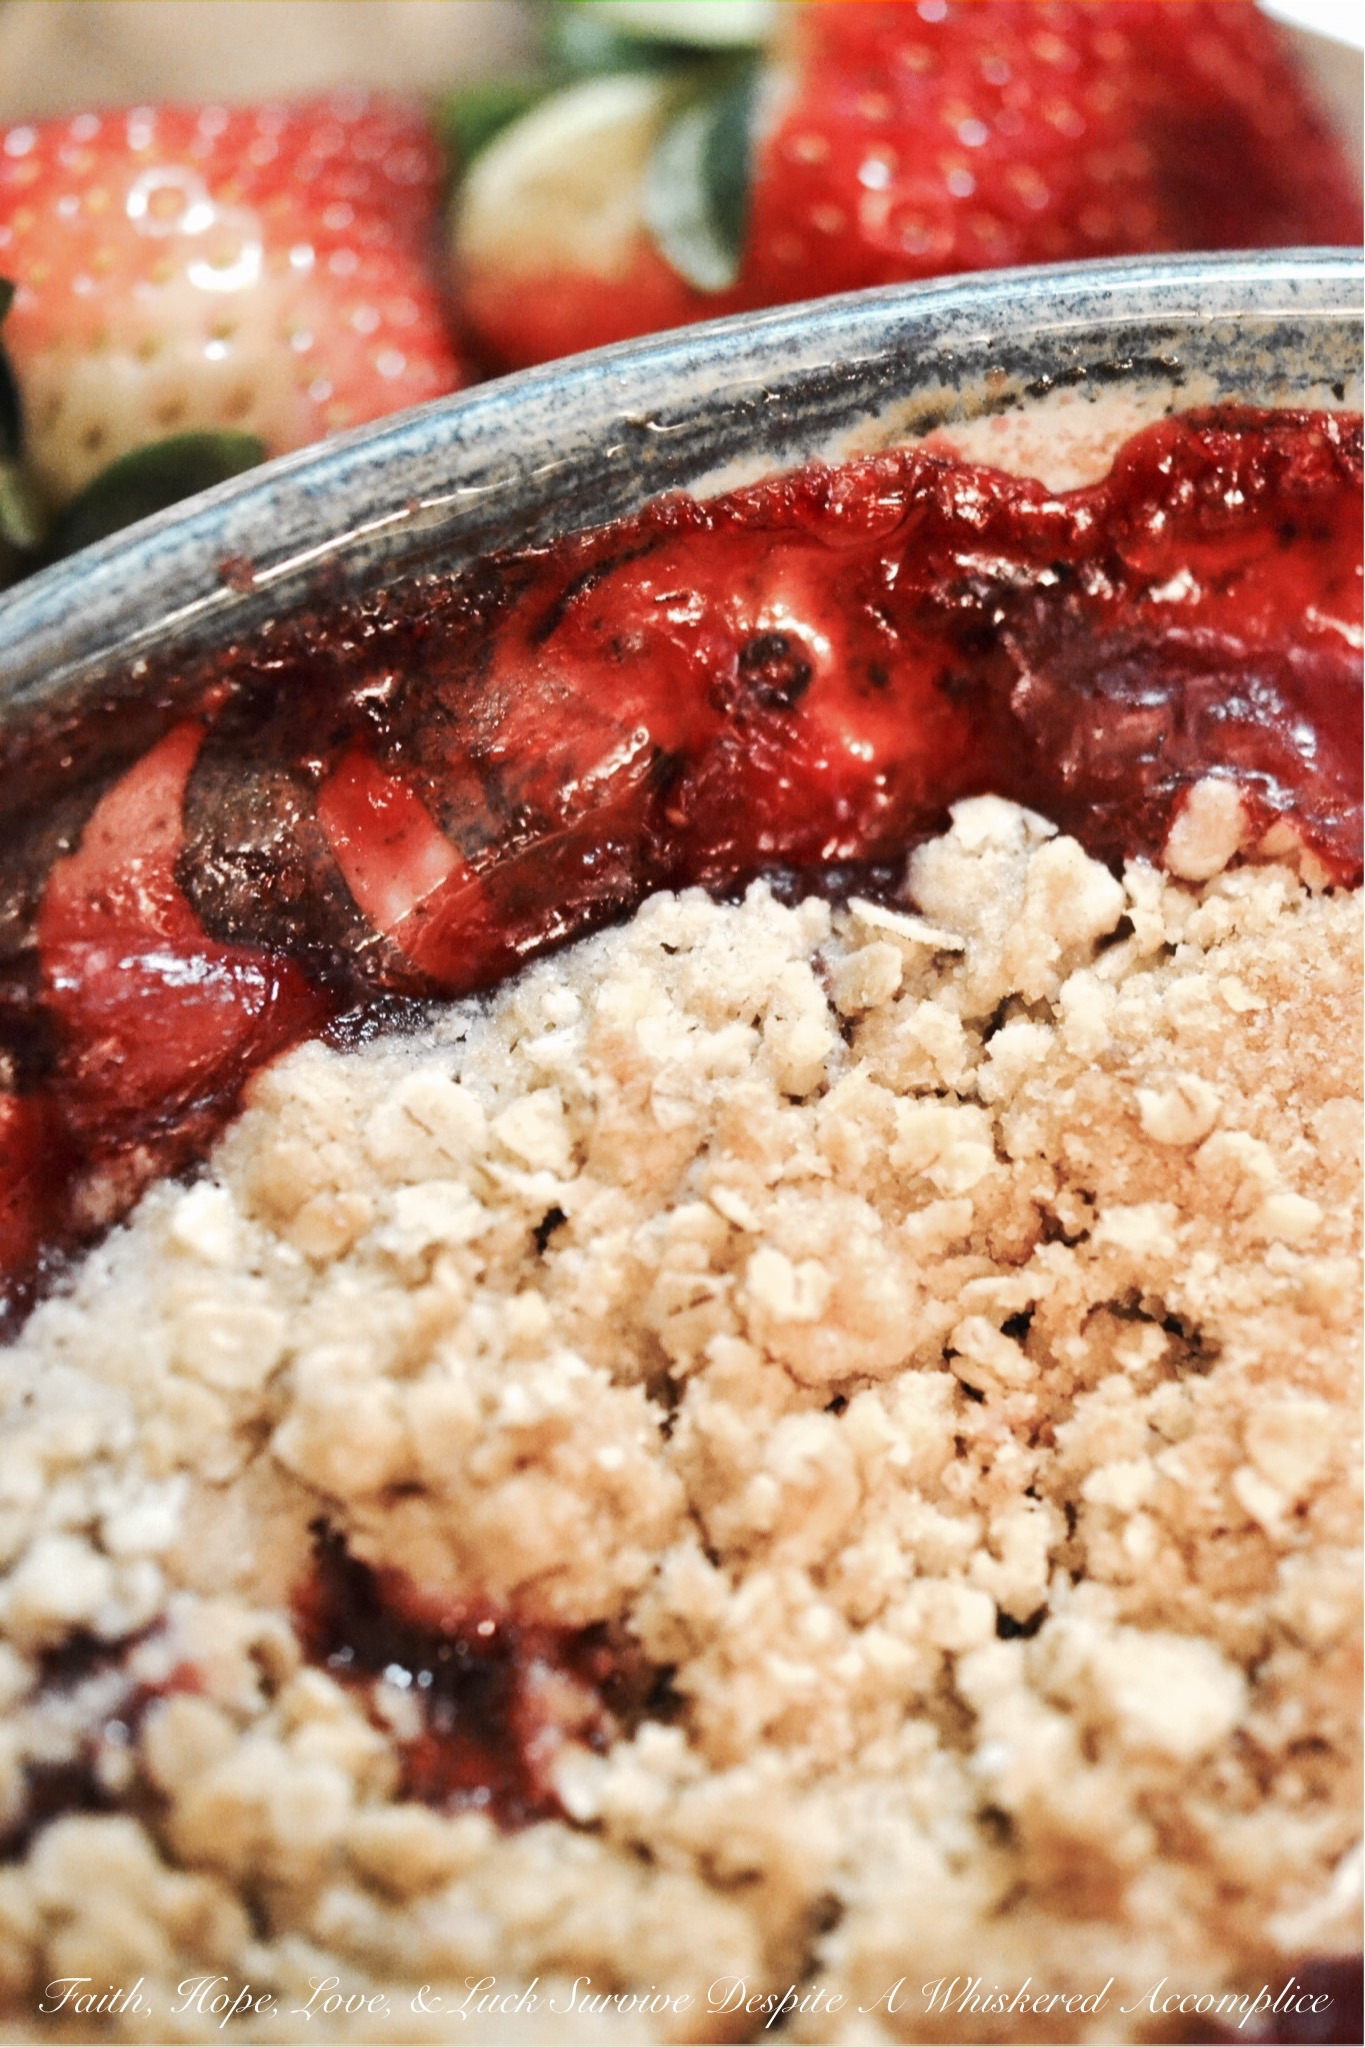 Strawberry Vanilla Oat Crumble